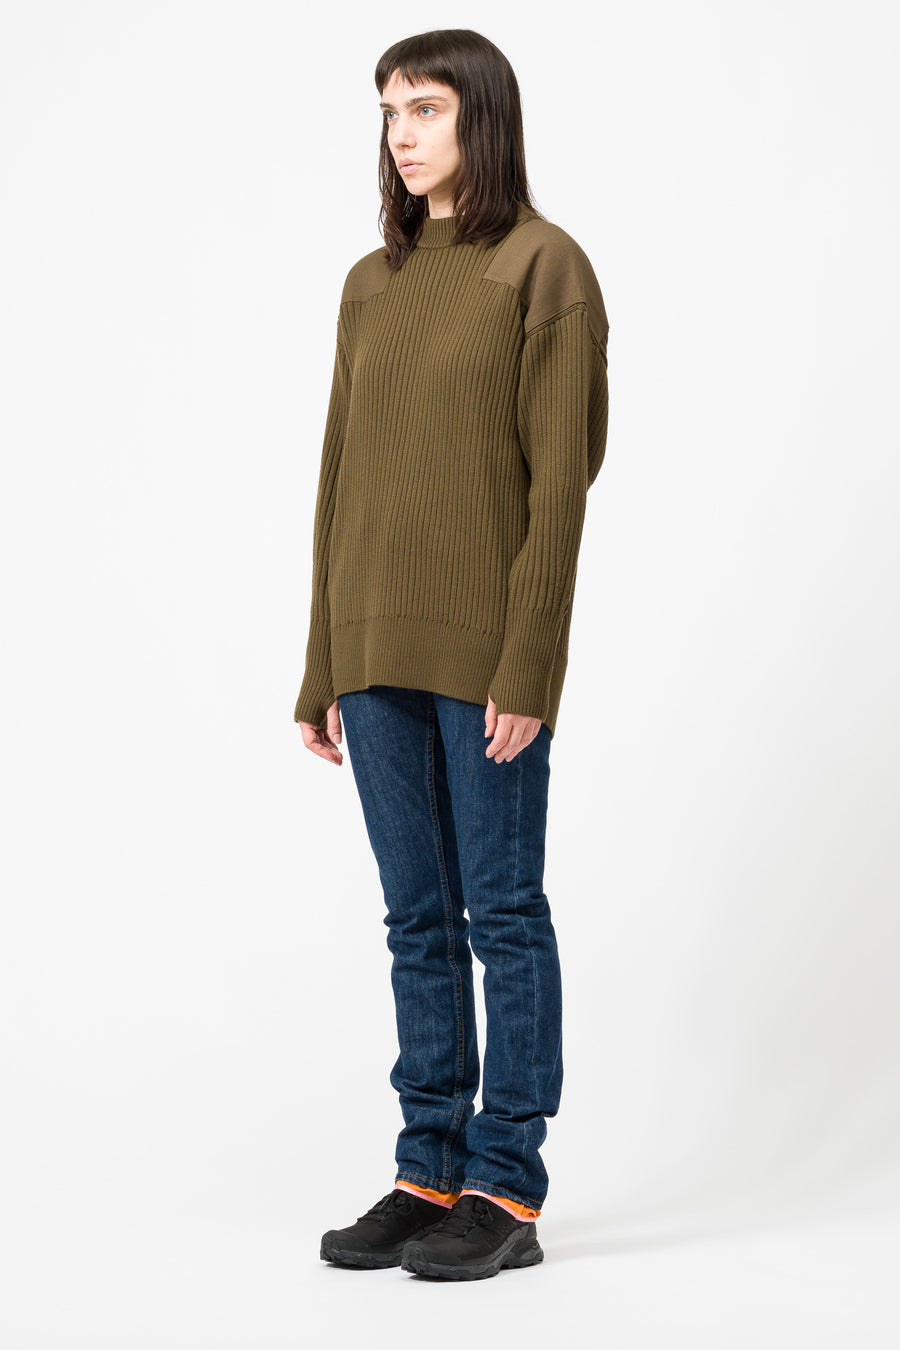 Hyke Knit Sweater in Olive Drab - Notre